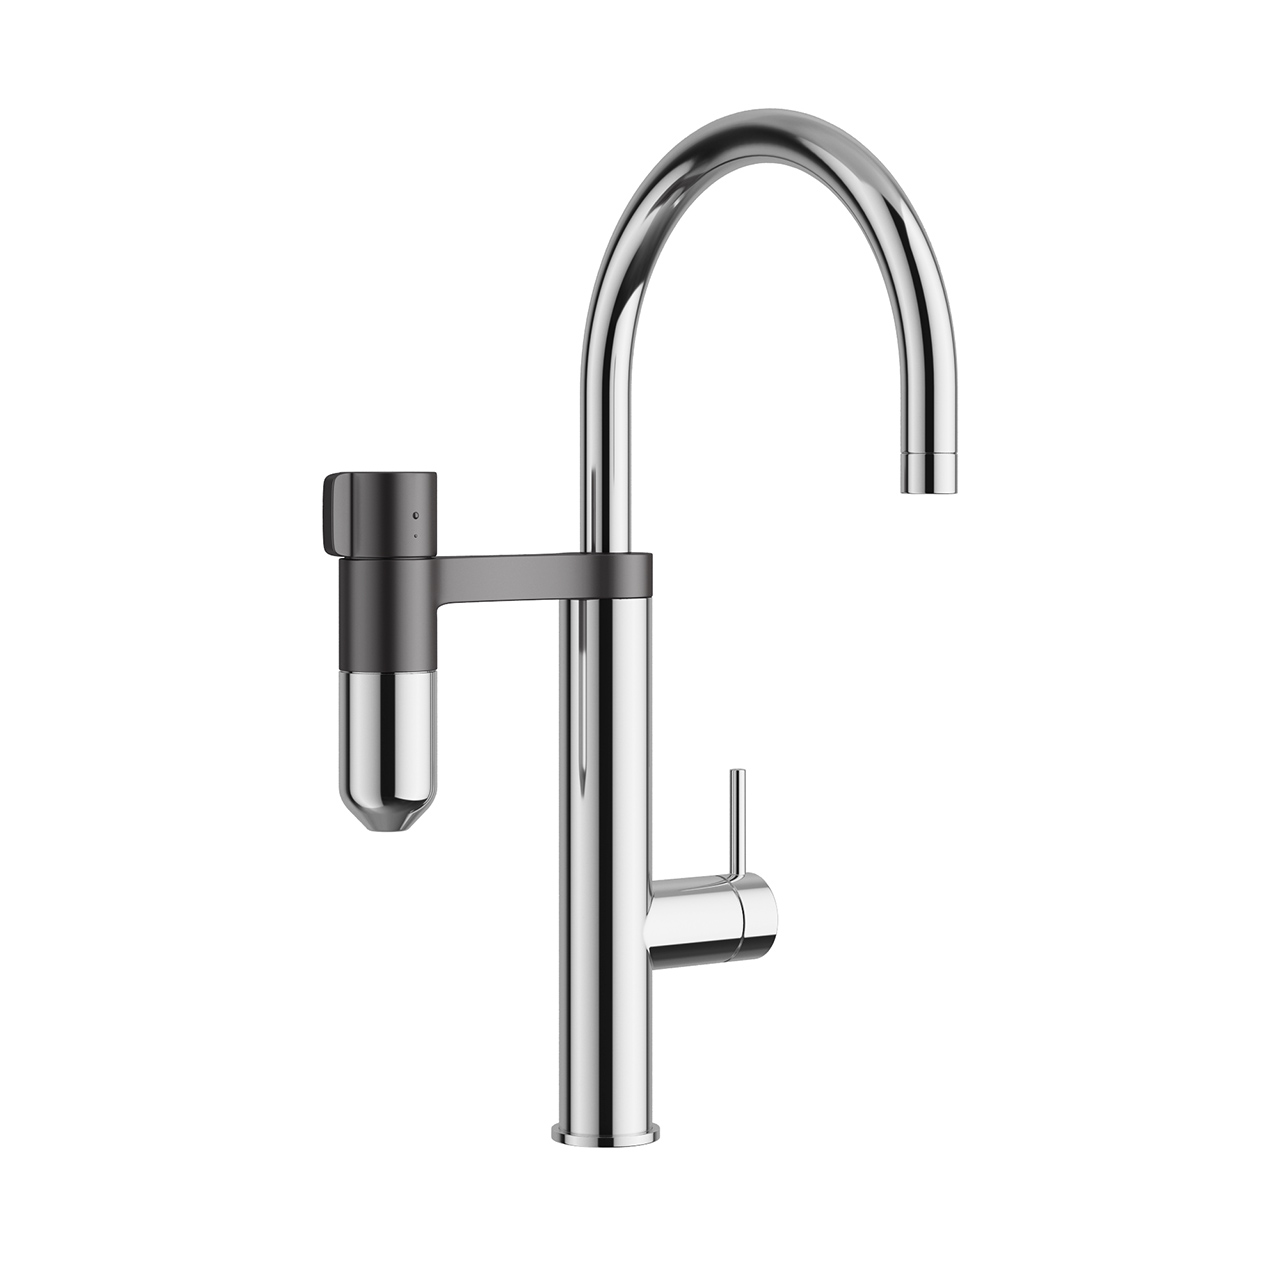 Vital Kitchen 2in1 Swivel Spout Tap by Franke